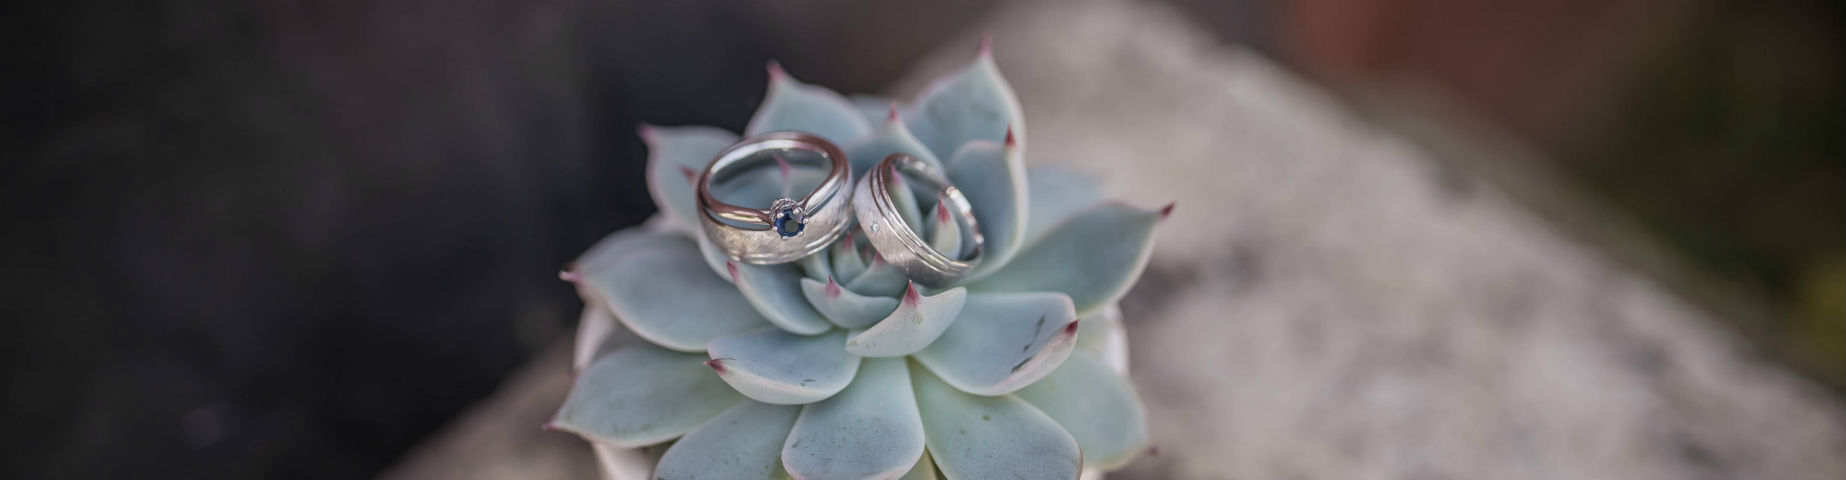 saimple sapphire ring on succulent plant